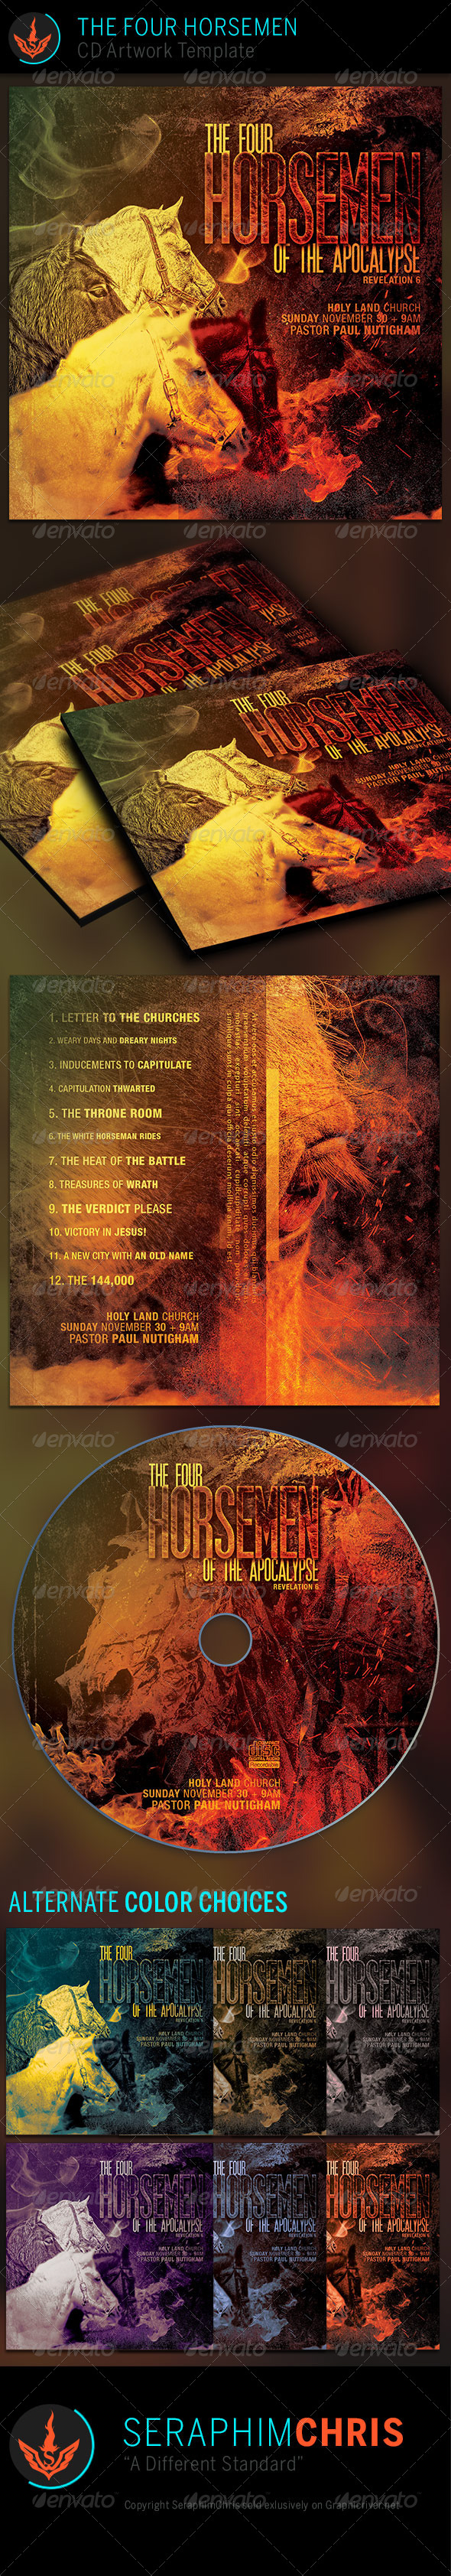 GraphicRiver The Four Horsemen CD Artwork Template 7493302